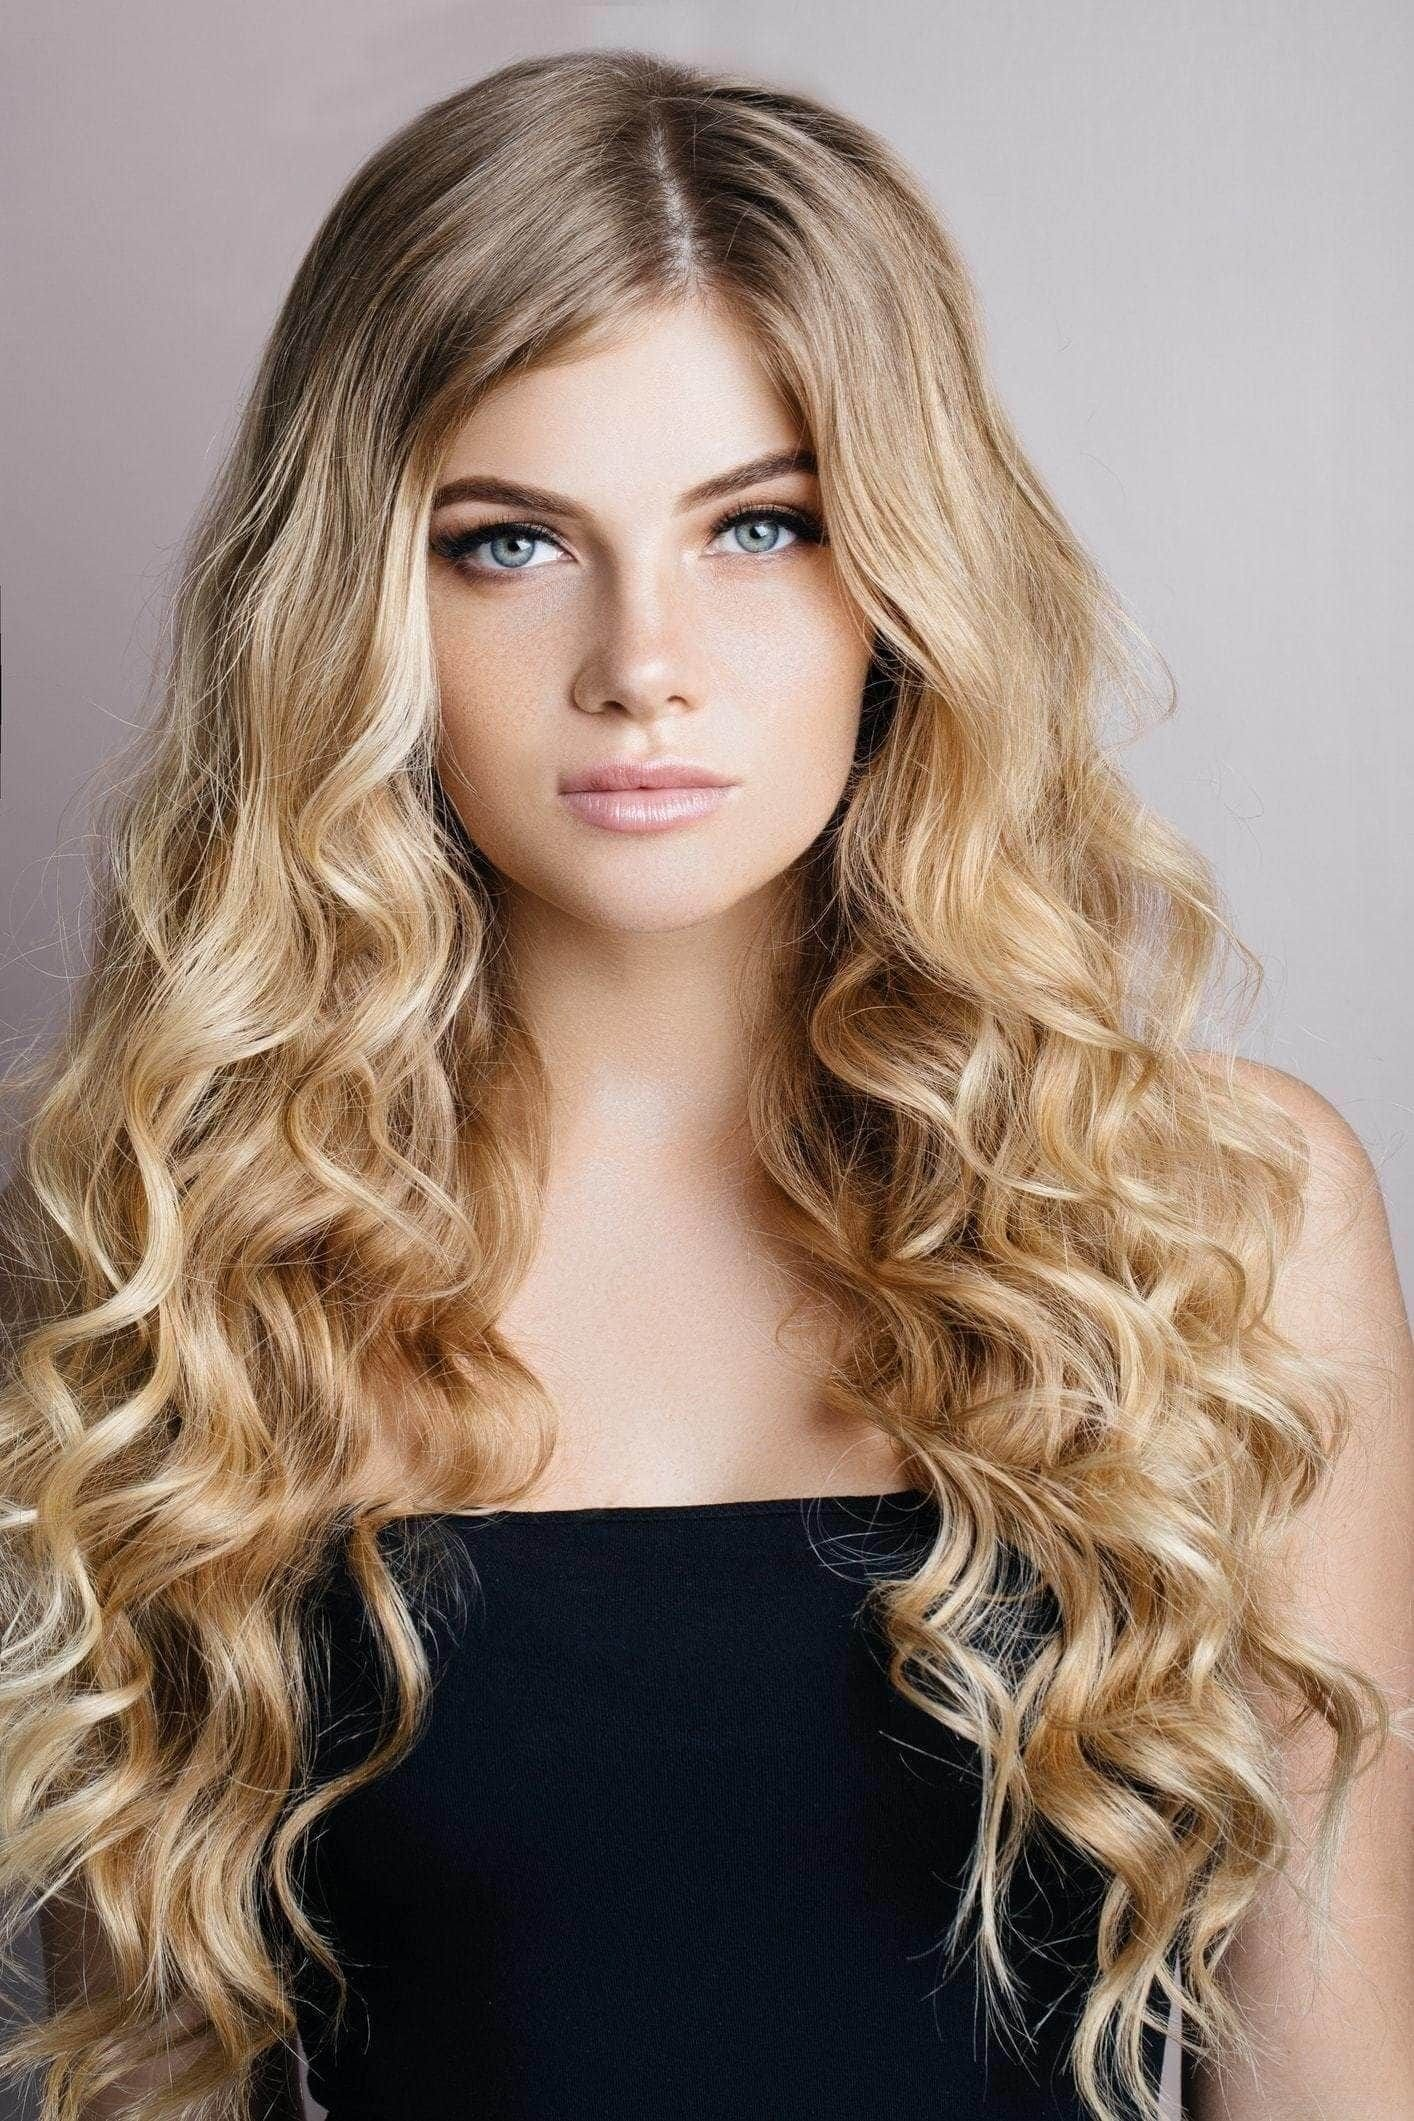 The Best These 25 Golden Blonde Looks Will Give You Serious Blonde Envy Pictures